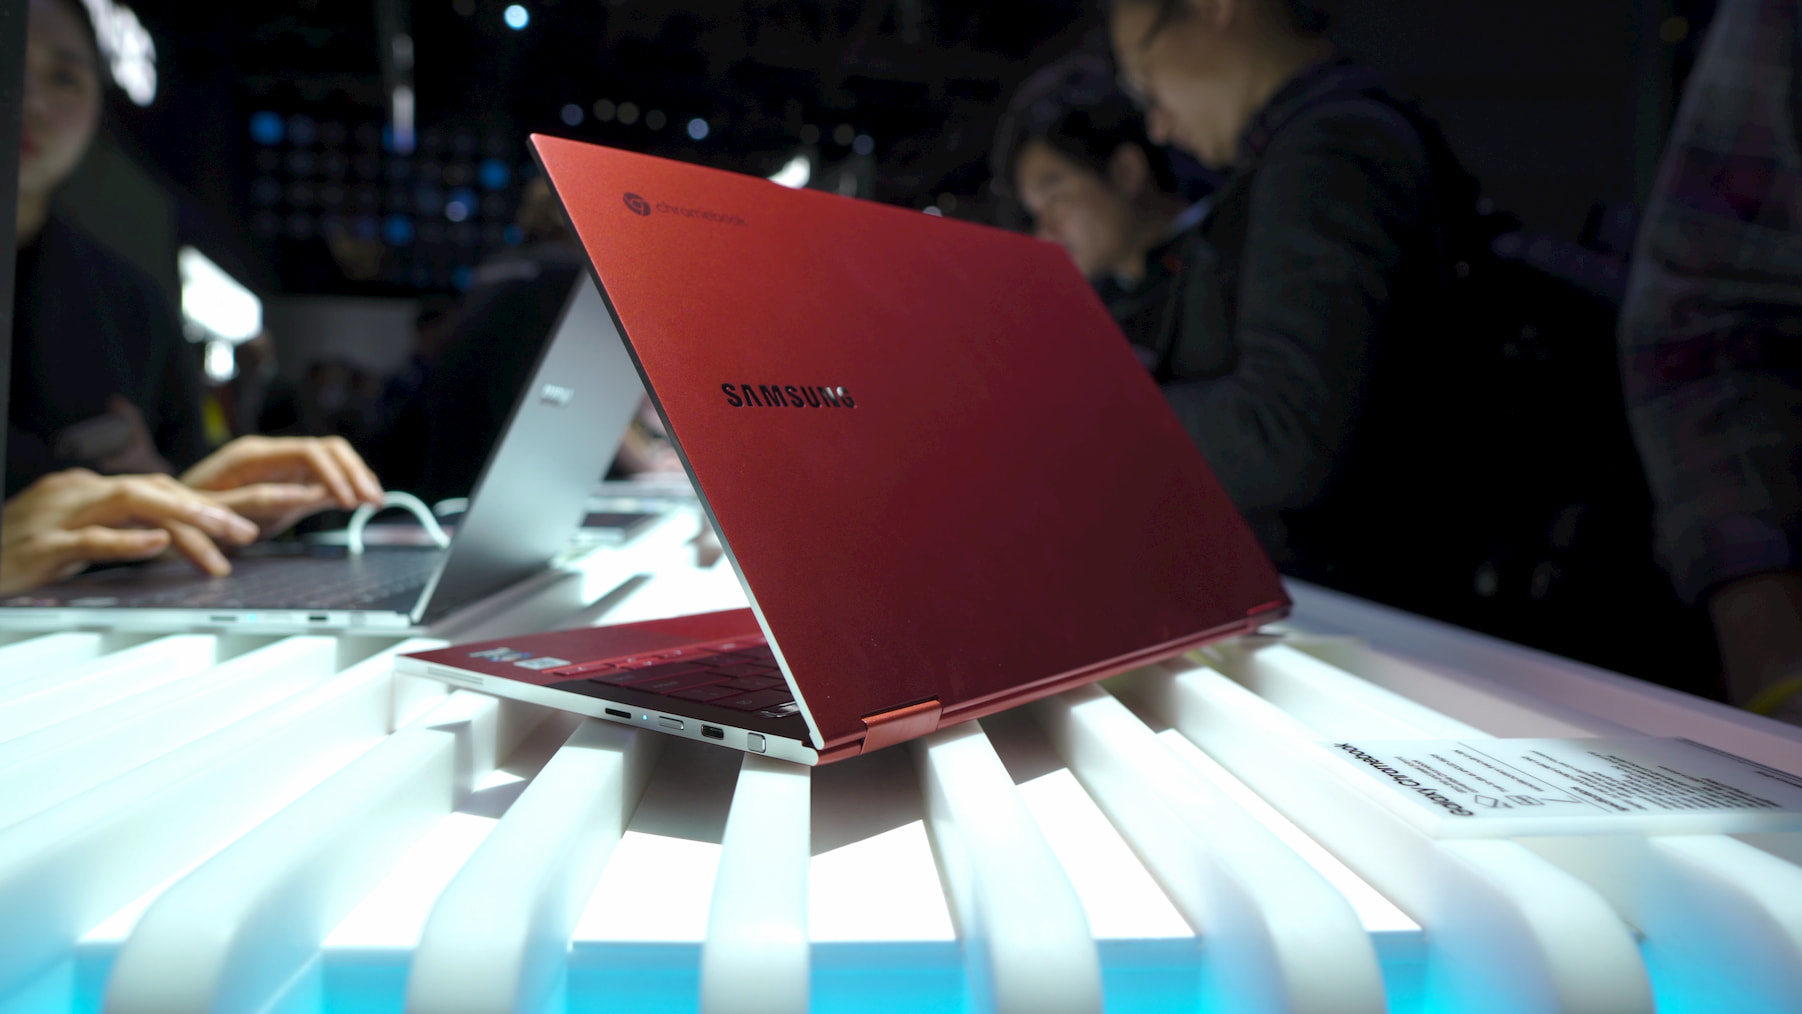 Samsung accidentally listed one bogus spec on its Galaxy Chromebook landing page